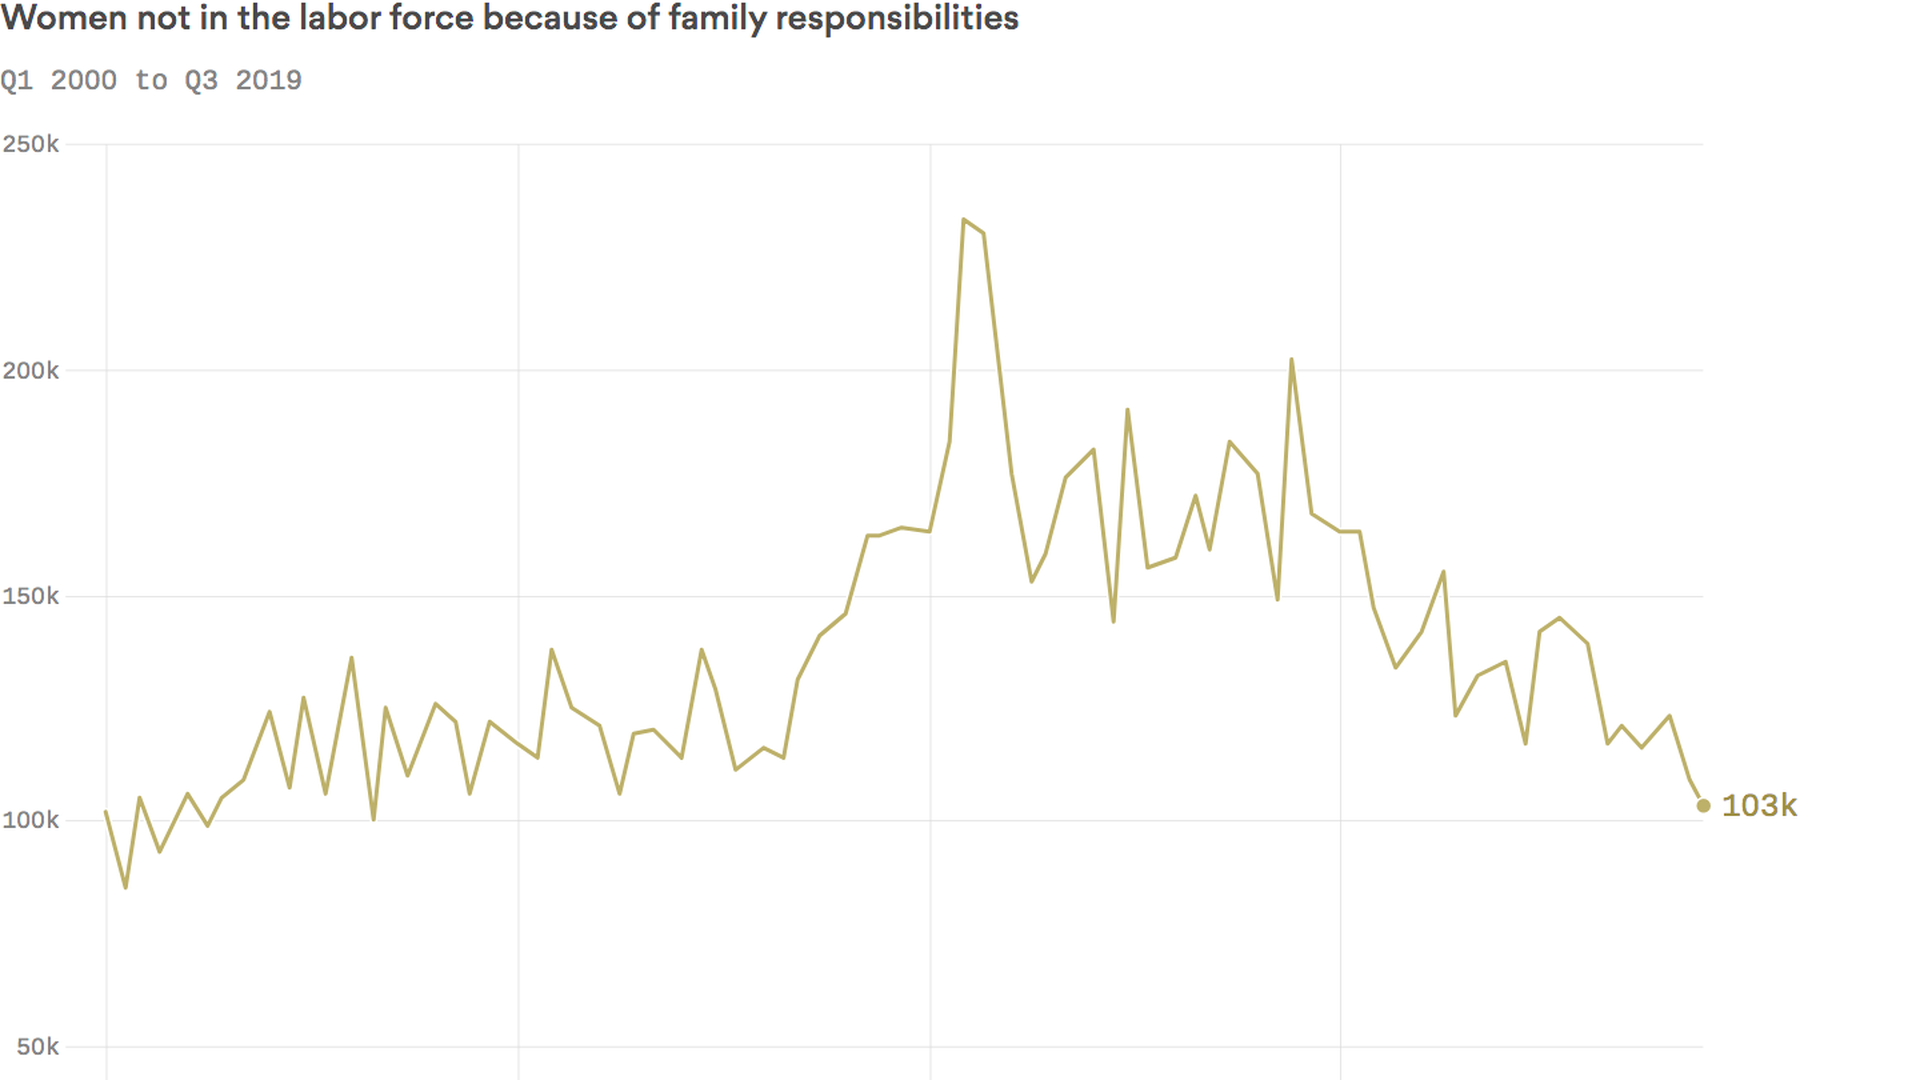 Chart: Women not in the labor force because of family responsibilities